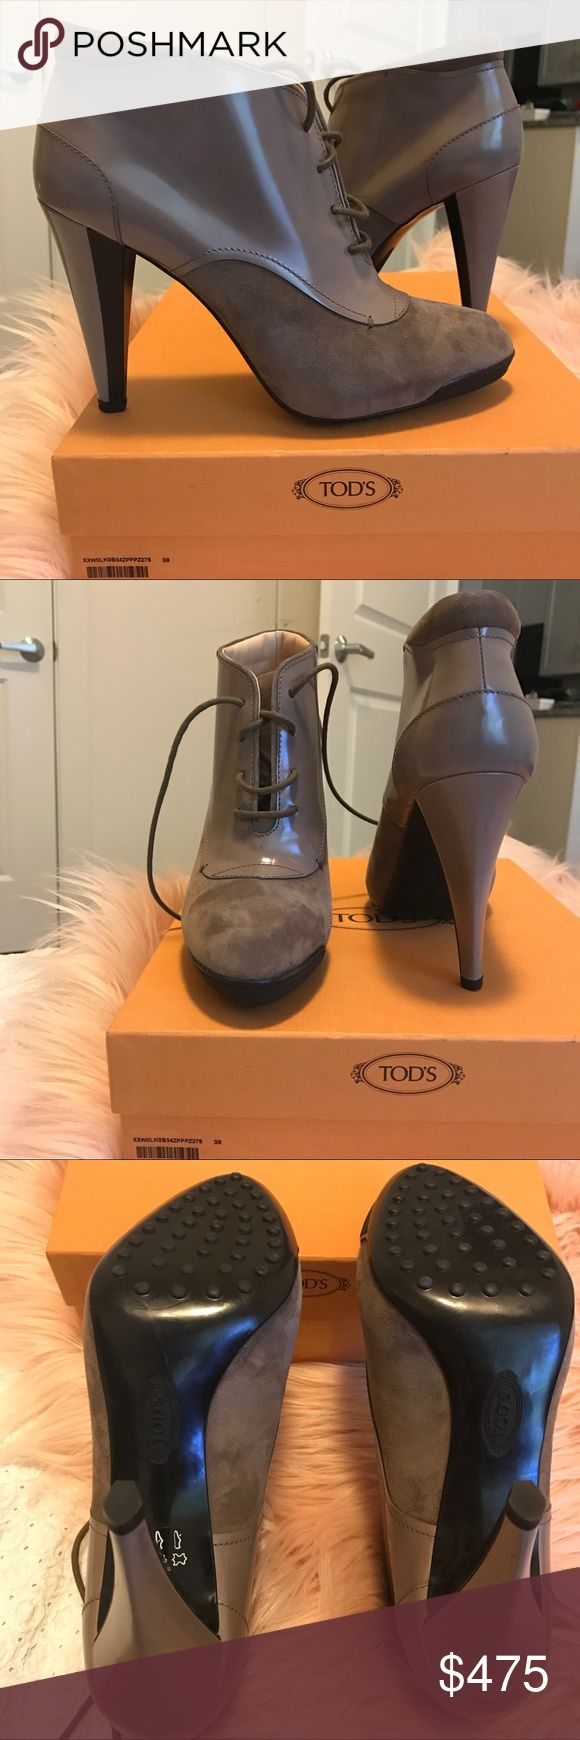 SALE❣️ $130 Tod's Patent & Suede Boots. These new in box, authentic, Tod's Booties are an absolute must have for every wardrobe. Absolutely pristine, and feature a rubber sole. If you're intimidated by high heels, don't be. The rubber sole makes these super easy, and comfortable to walk around in. Size 9 (Size 39). IMO, Tod's run true to US size. All my orders are packaged with love and shipped ASAP. Need gift wrapping? Add my gift wrapping service to your bundle. Over your budget? Just send…